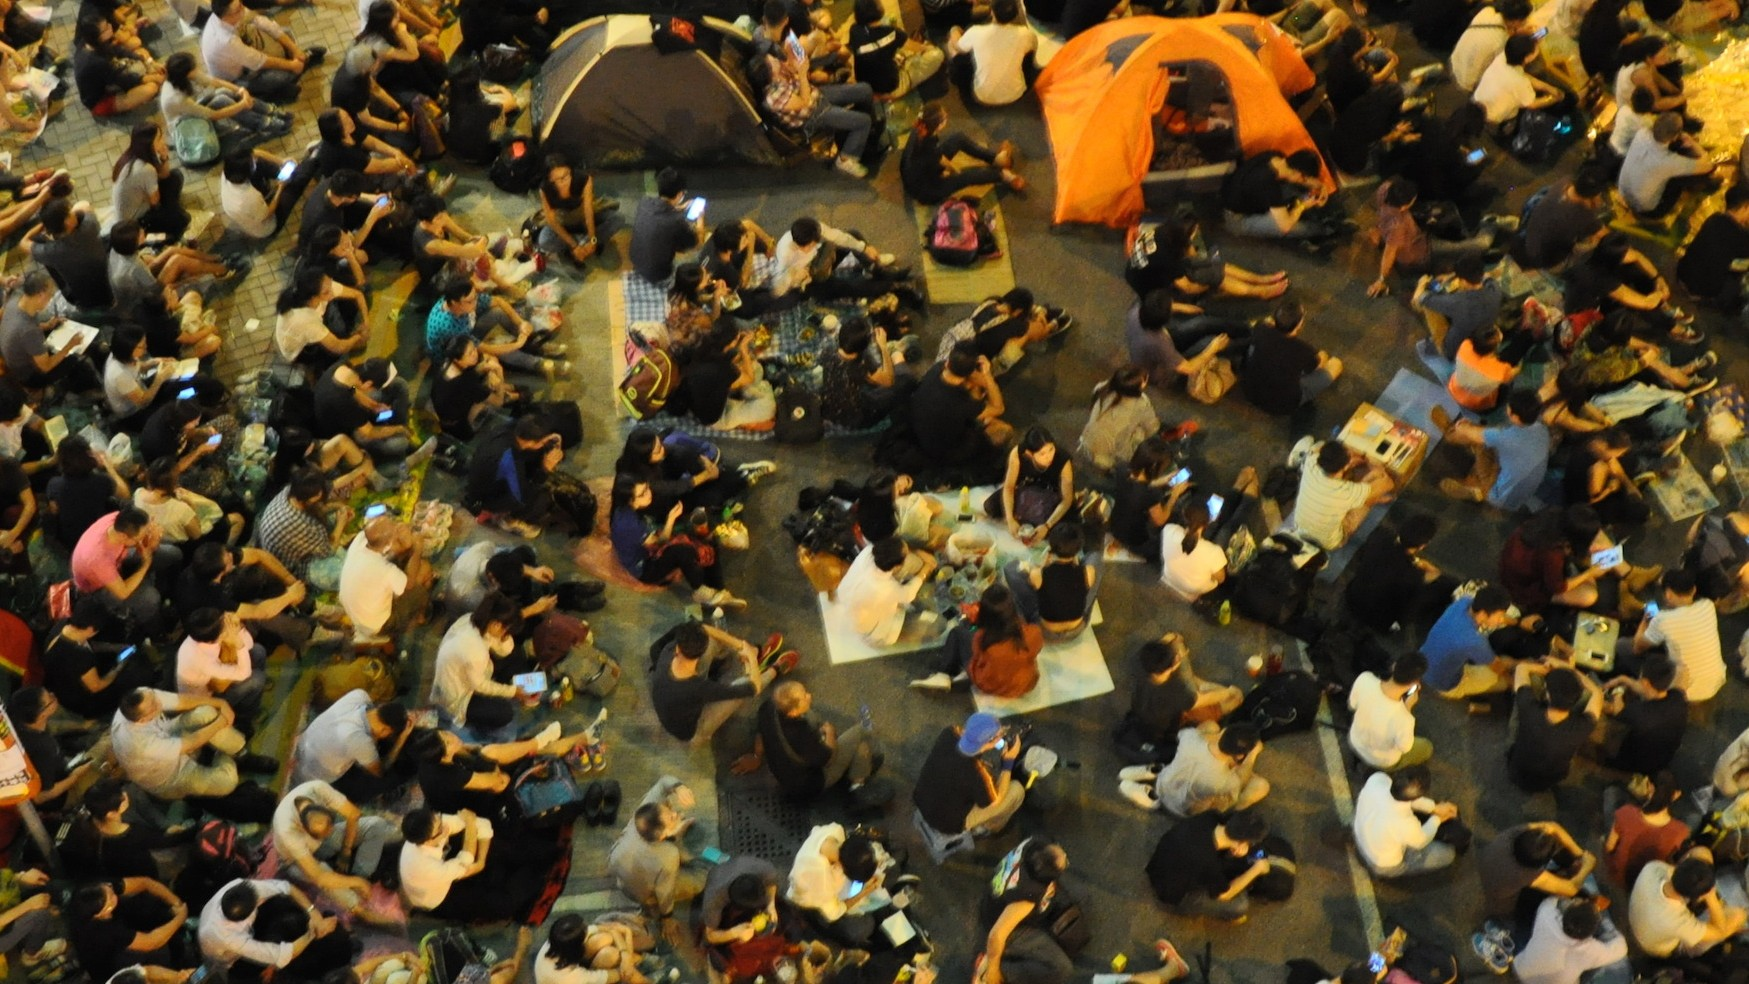 Did China Order Hackers to Cripple the Hong Kong Protest?